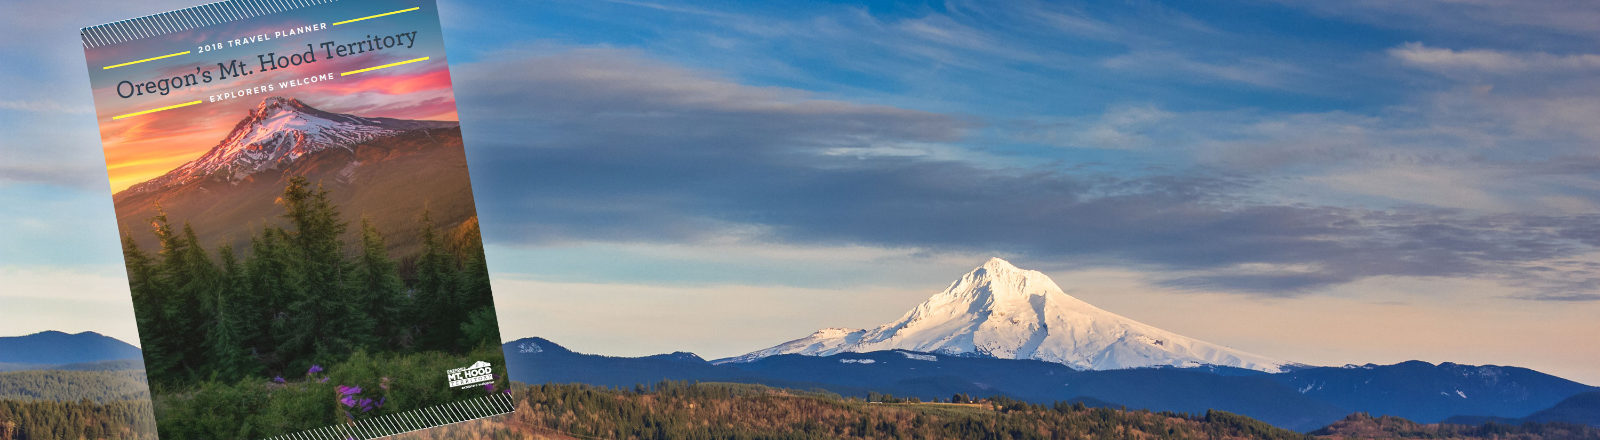 Snow white Mt. Hood with forest and autumn golf colored trees in forefront with travel planner superimposed on photo